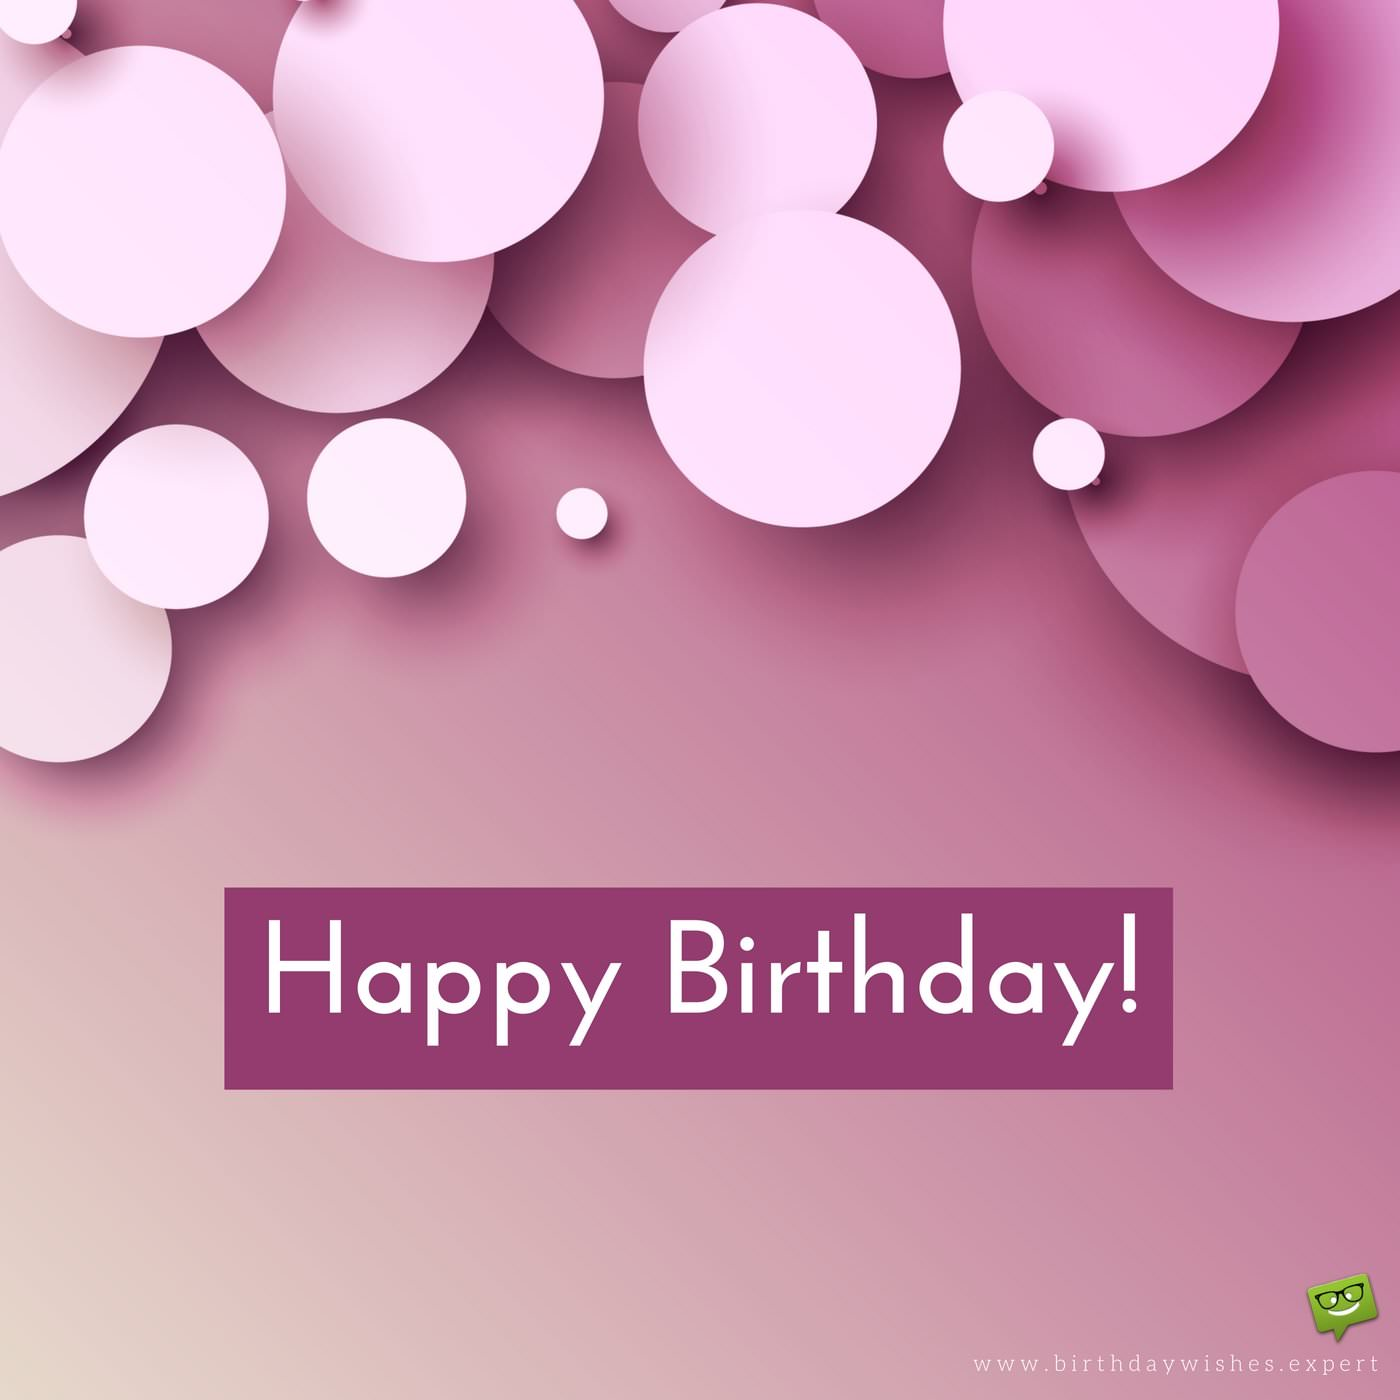 birthday wishes pictures ; Birthday-wish-for-a-friend-on-modern-pink-background